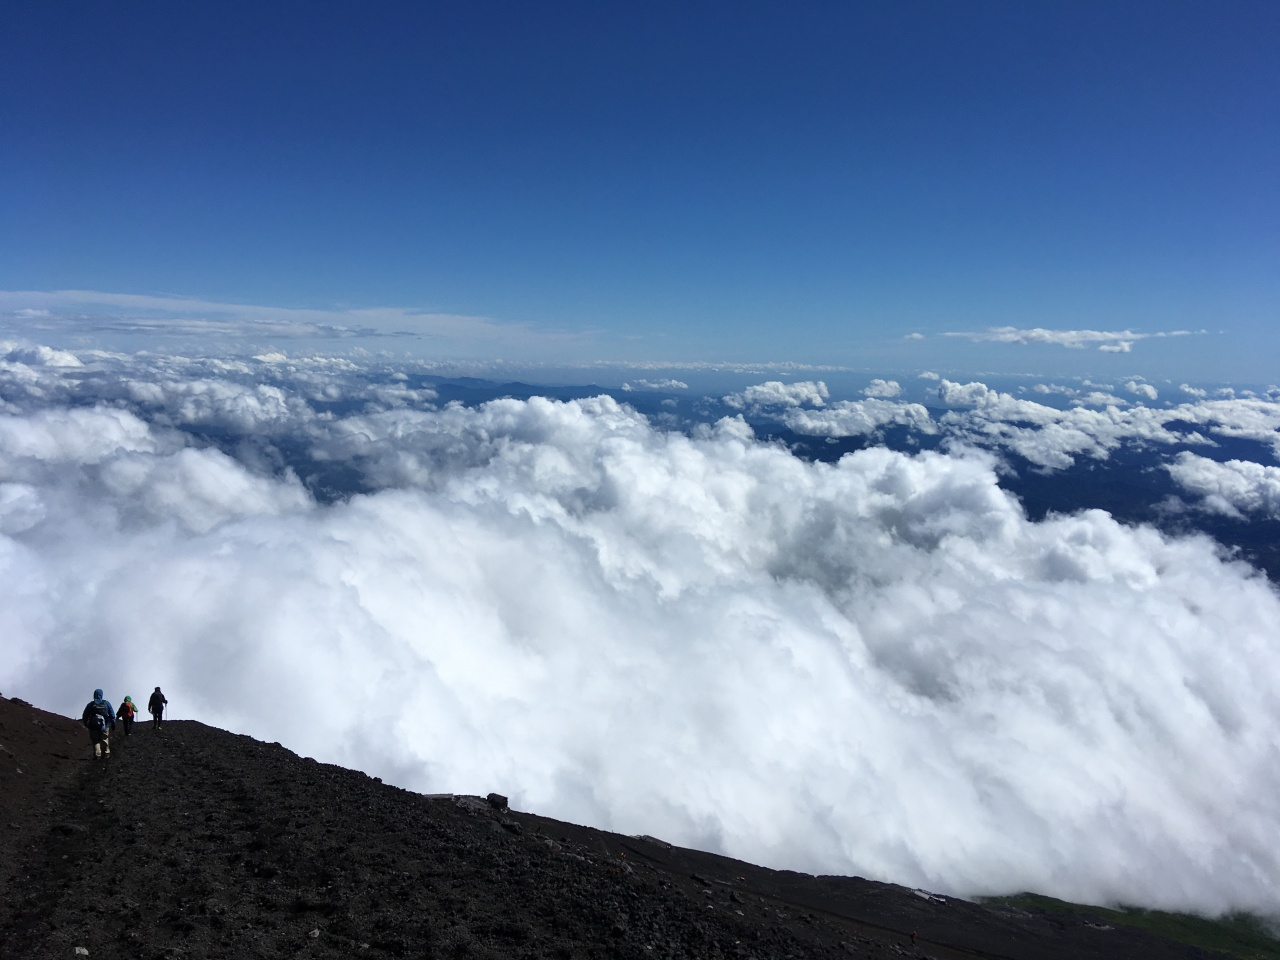 Climbing Mt. Fuji — The Descent